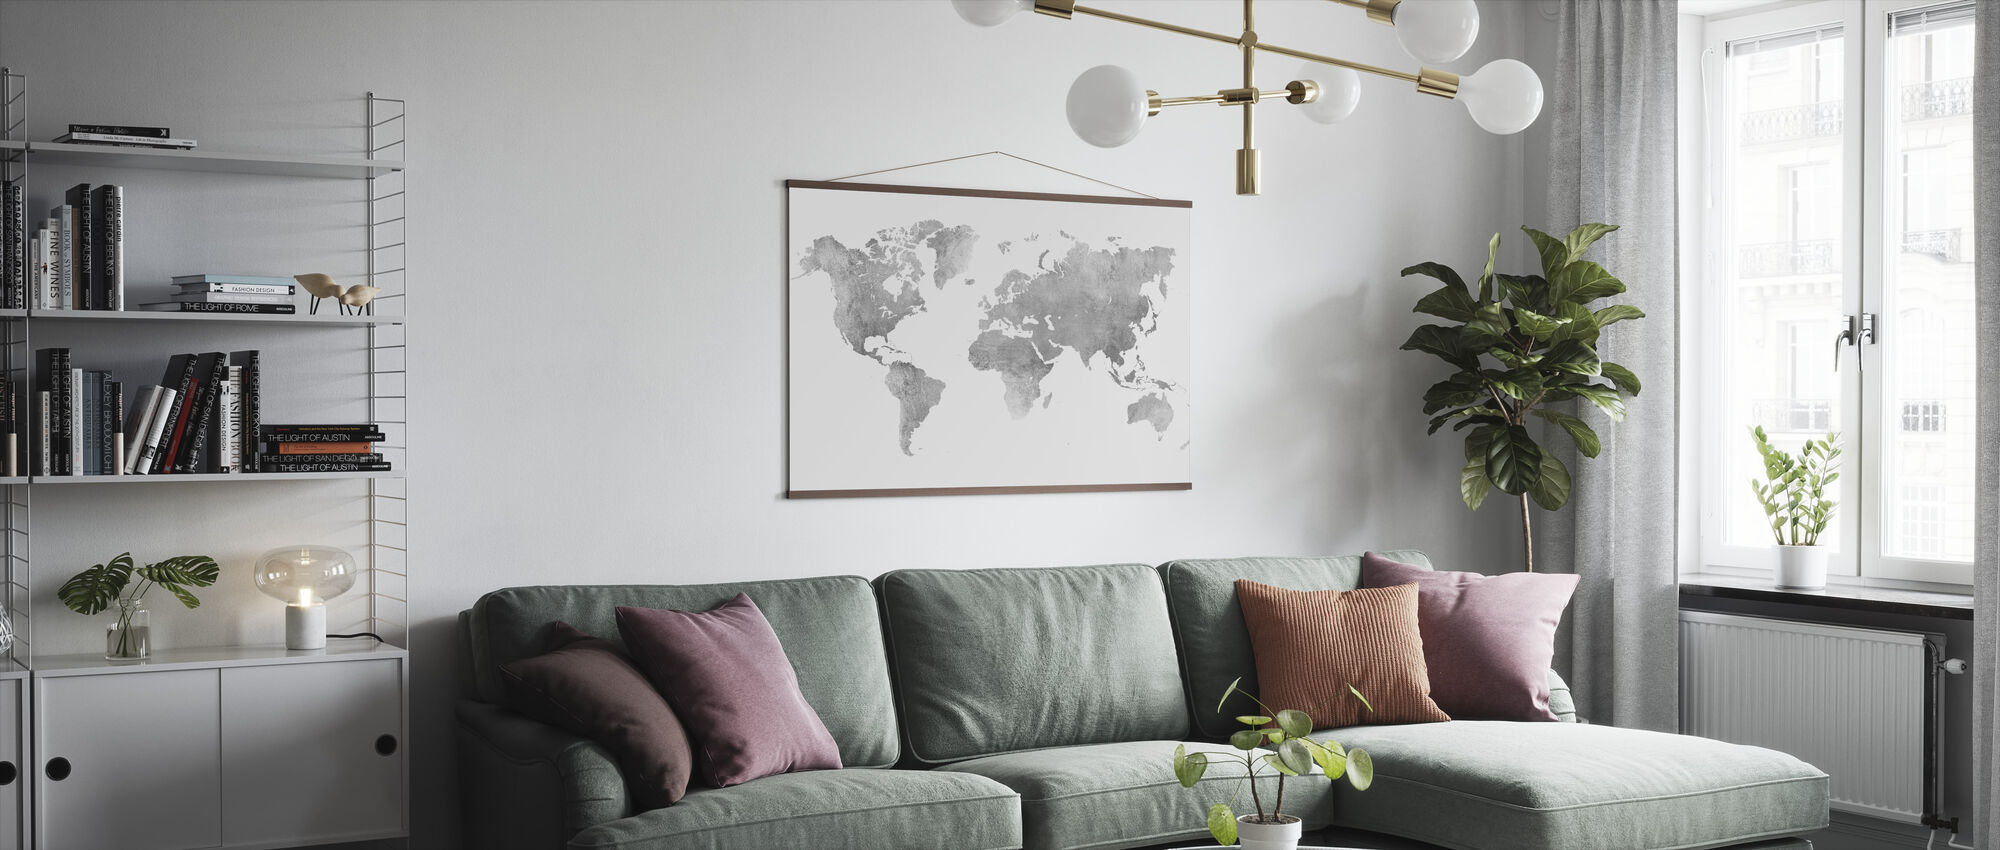 World Map Brushed Metal II - Poster - Living Room